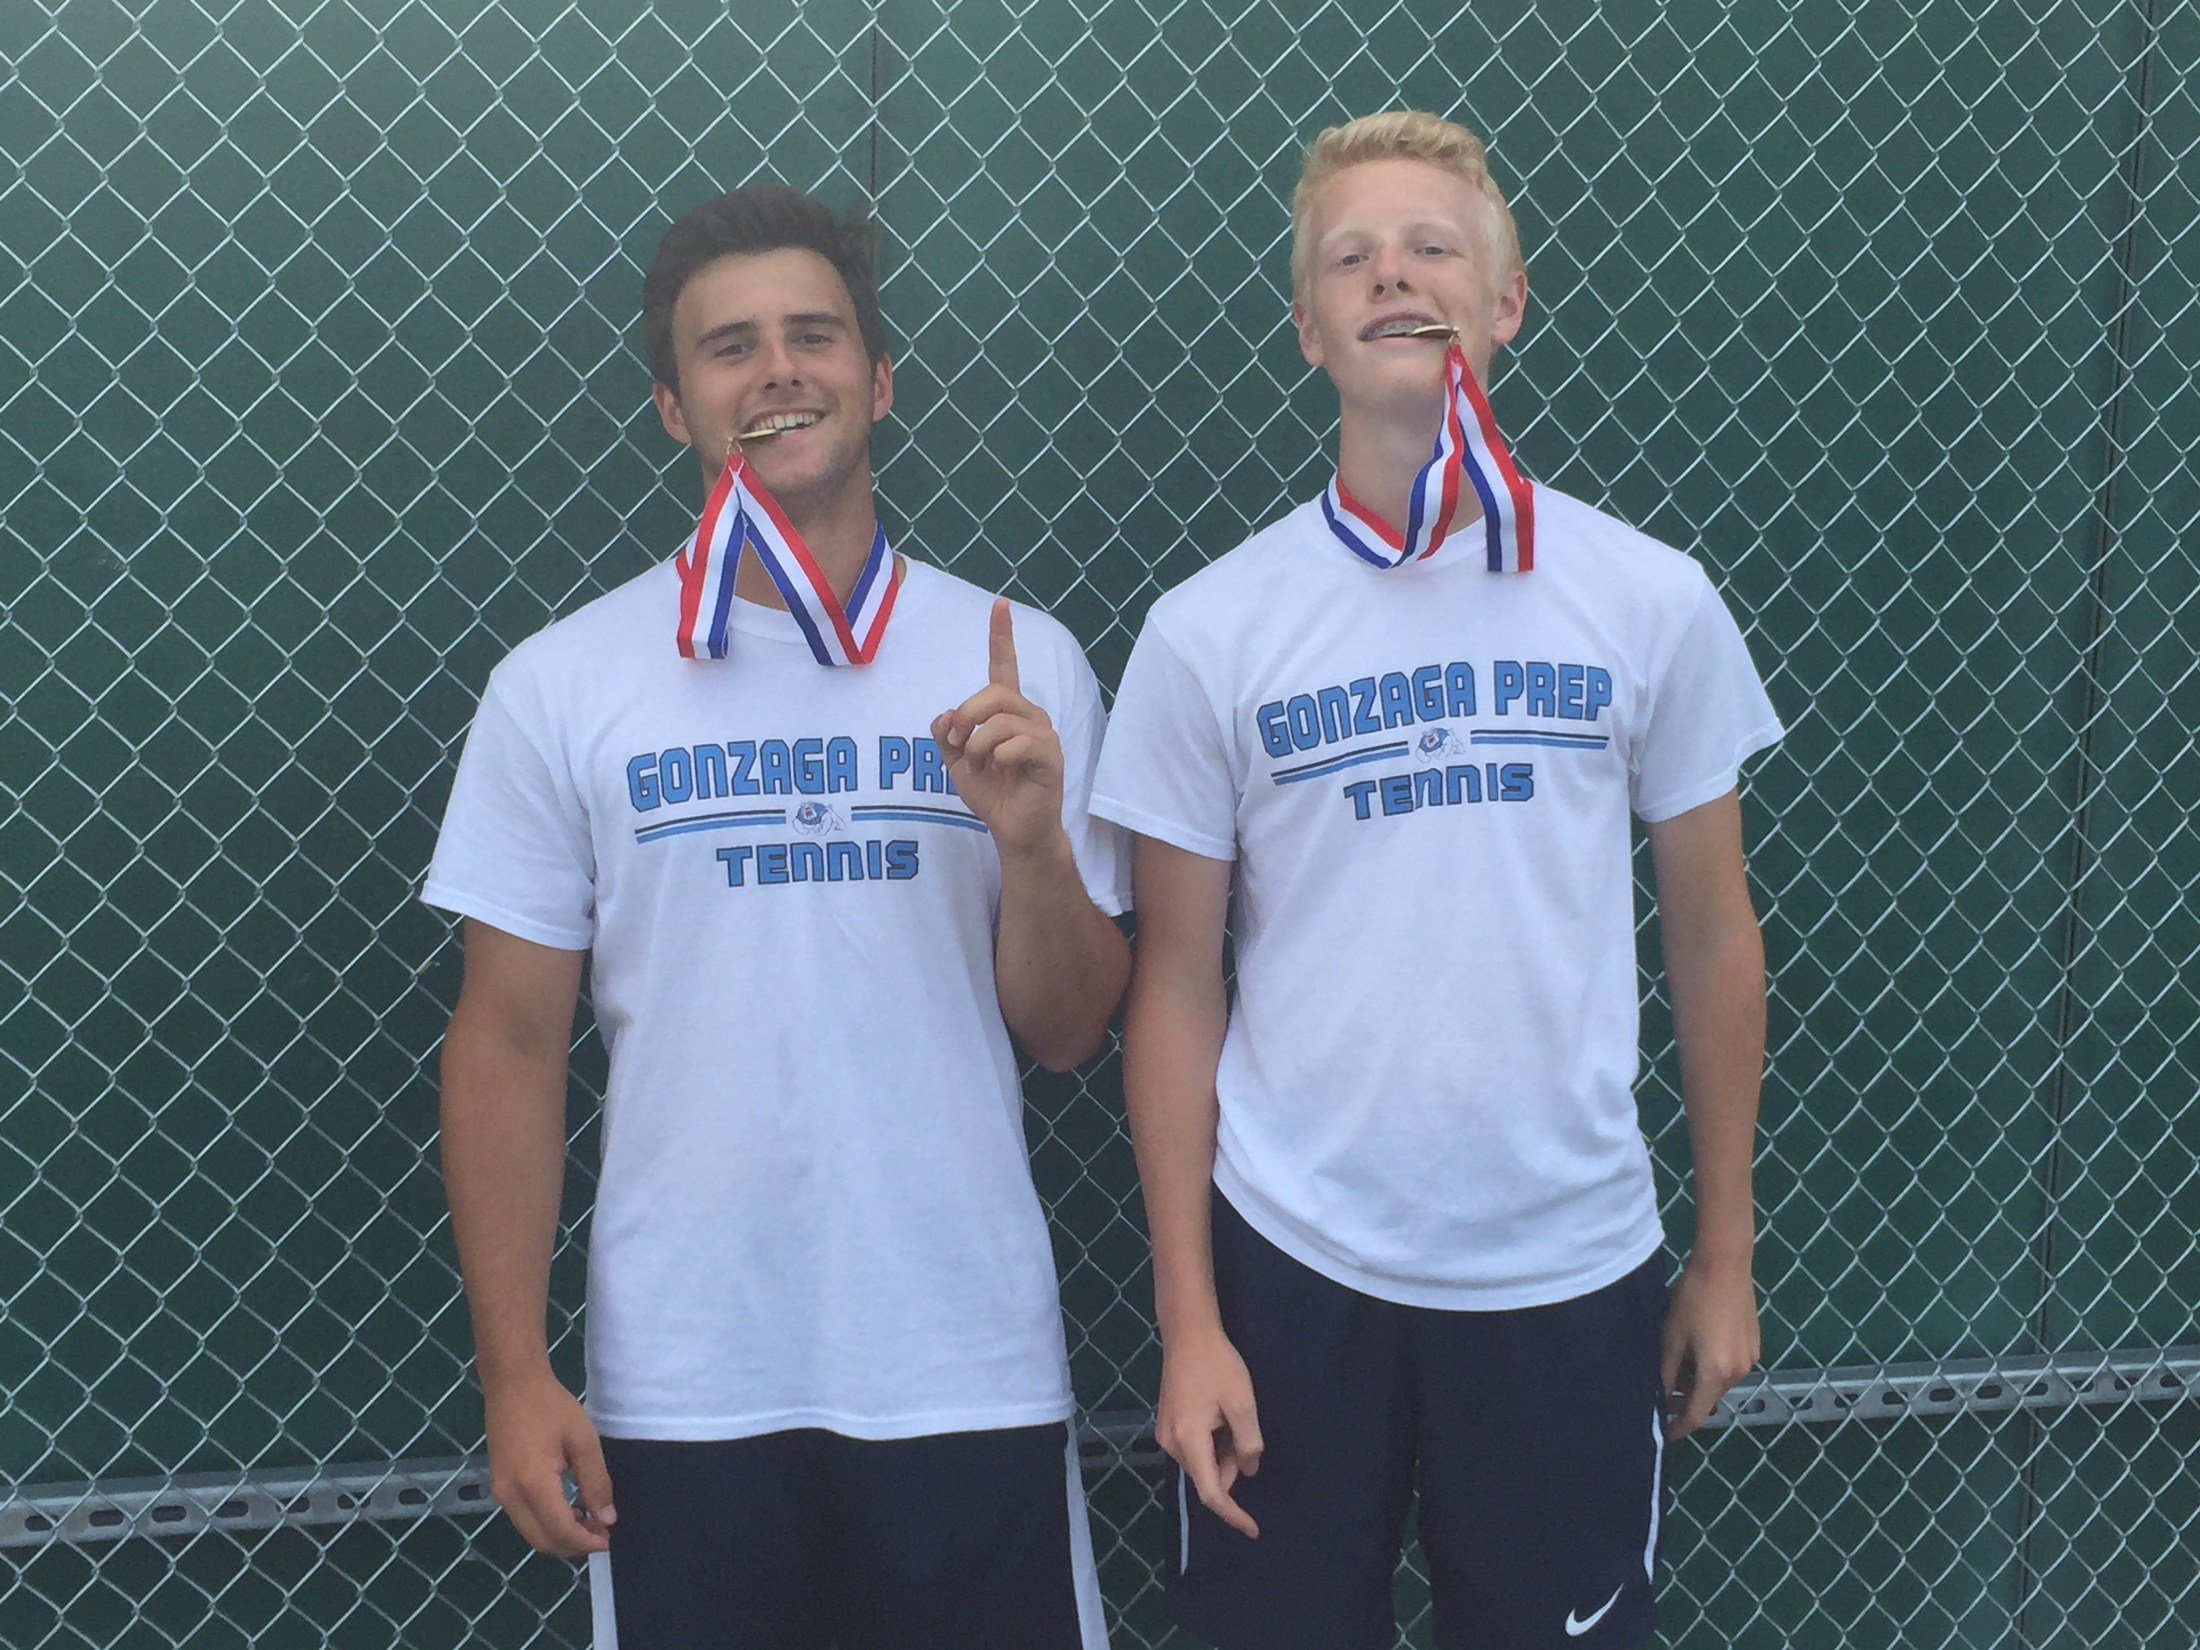 Boys Tennis - District Champions